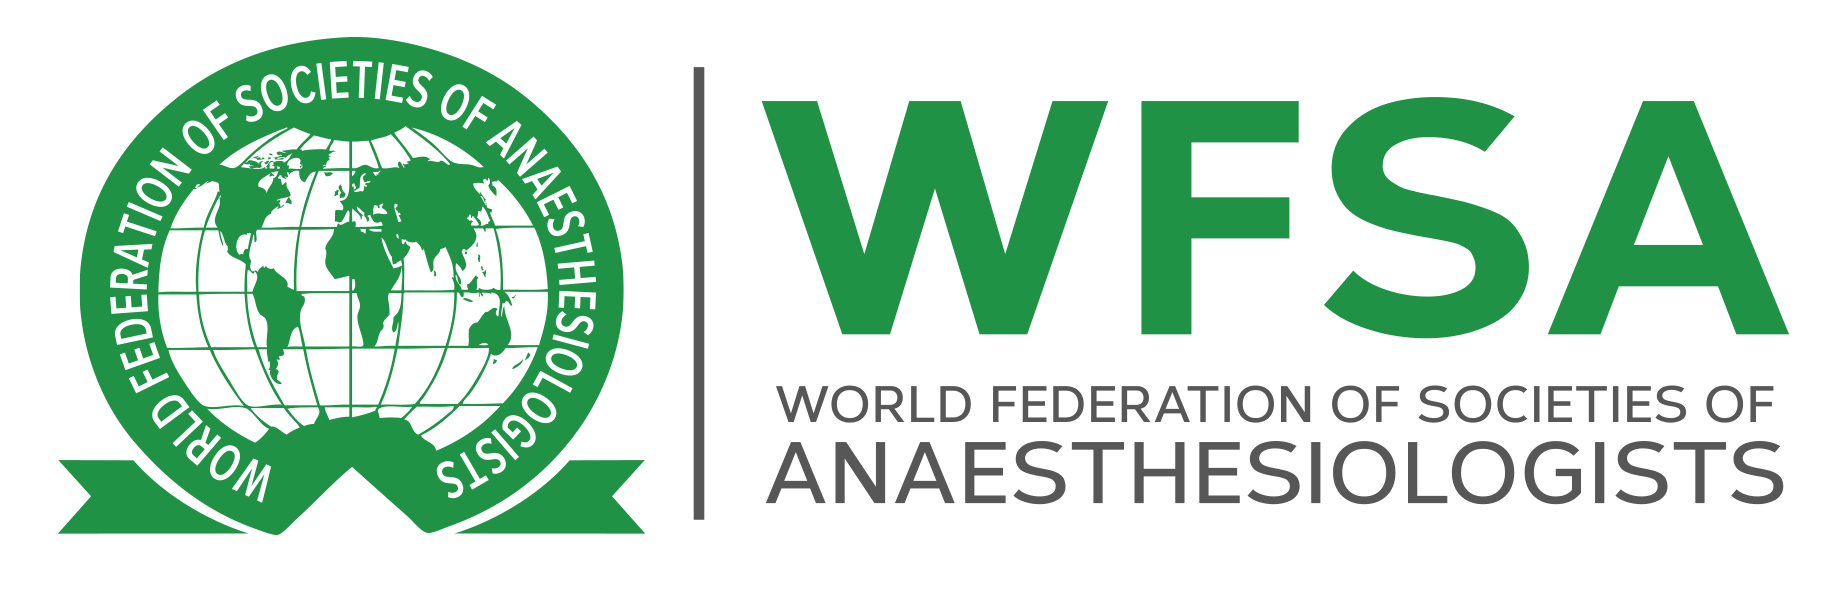 World Federation of Societies of Anaesthesiologists (WFSA) Logo PNG.png